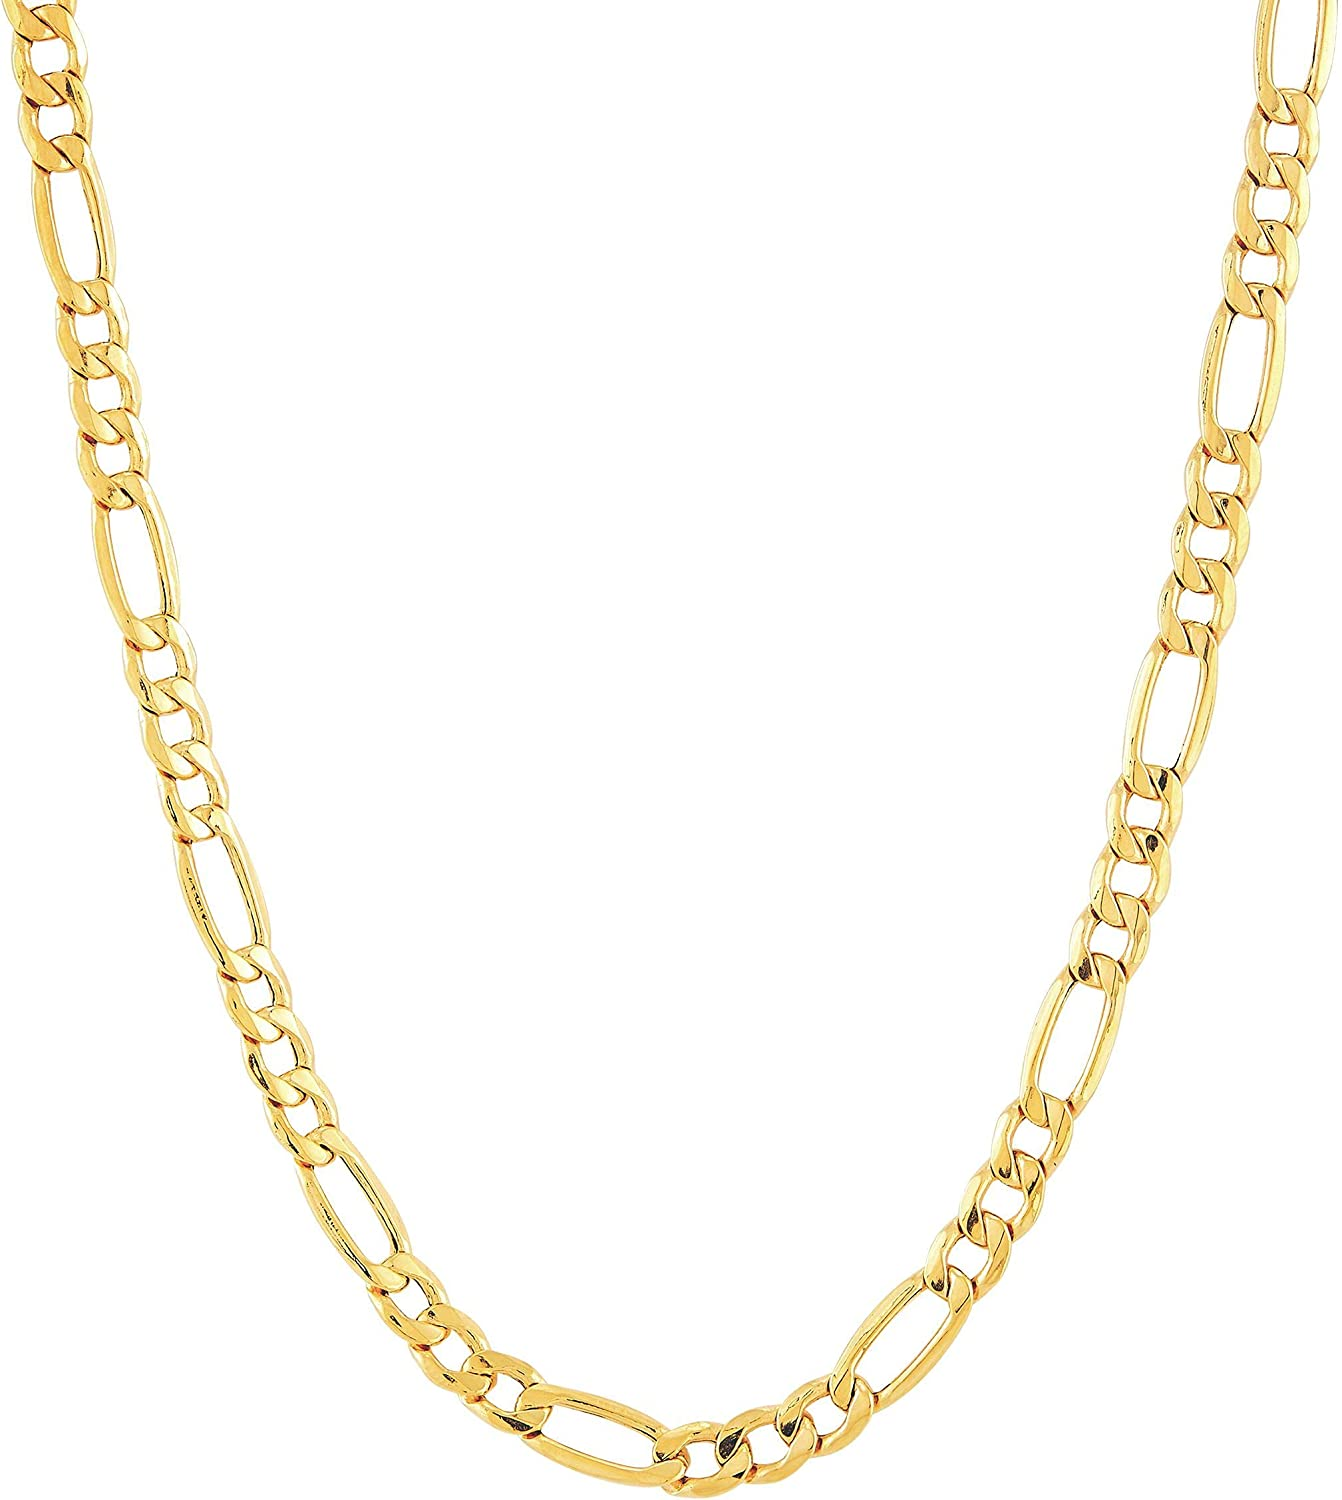 Welry Men's Italian-Made 3+1 Figaro Link Chain Necklace in 14K Gold, 20